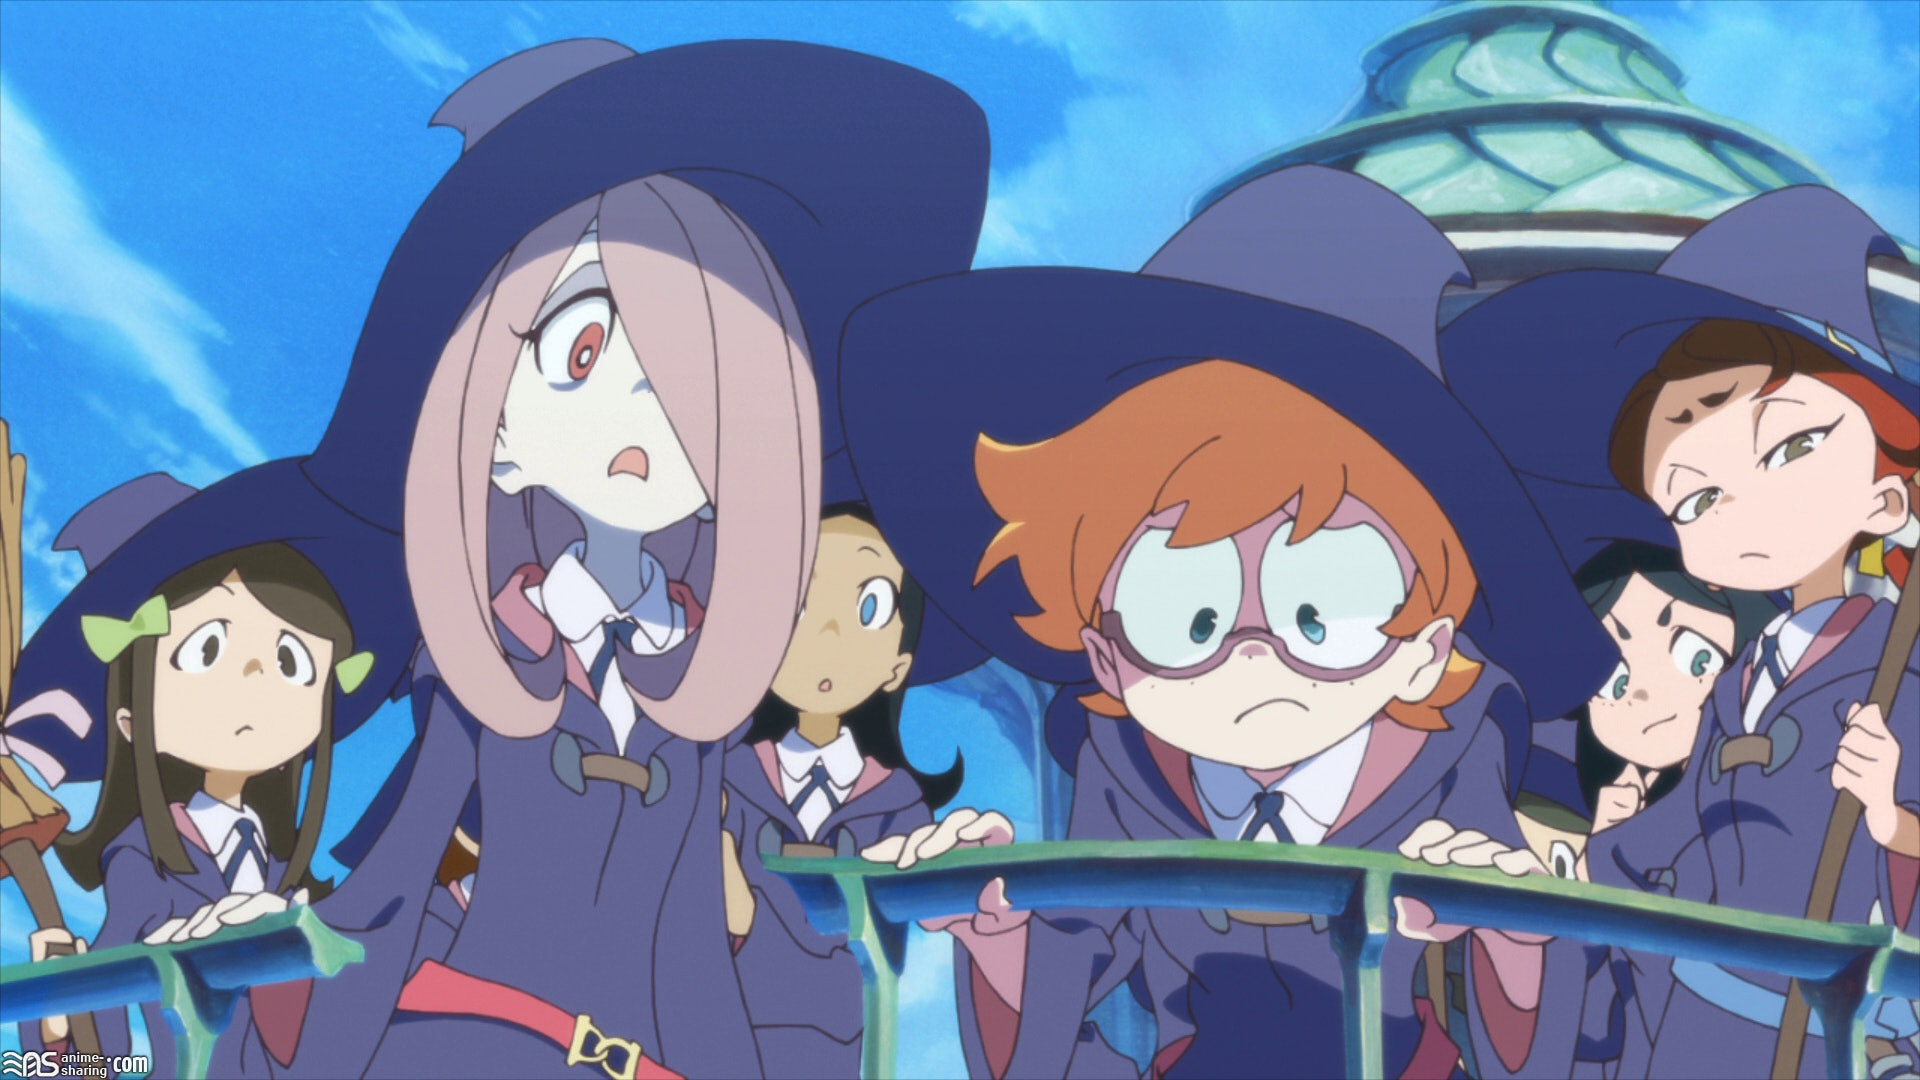 Netflix S Little Witch Academia Anime Is An All Girls Hogwarts